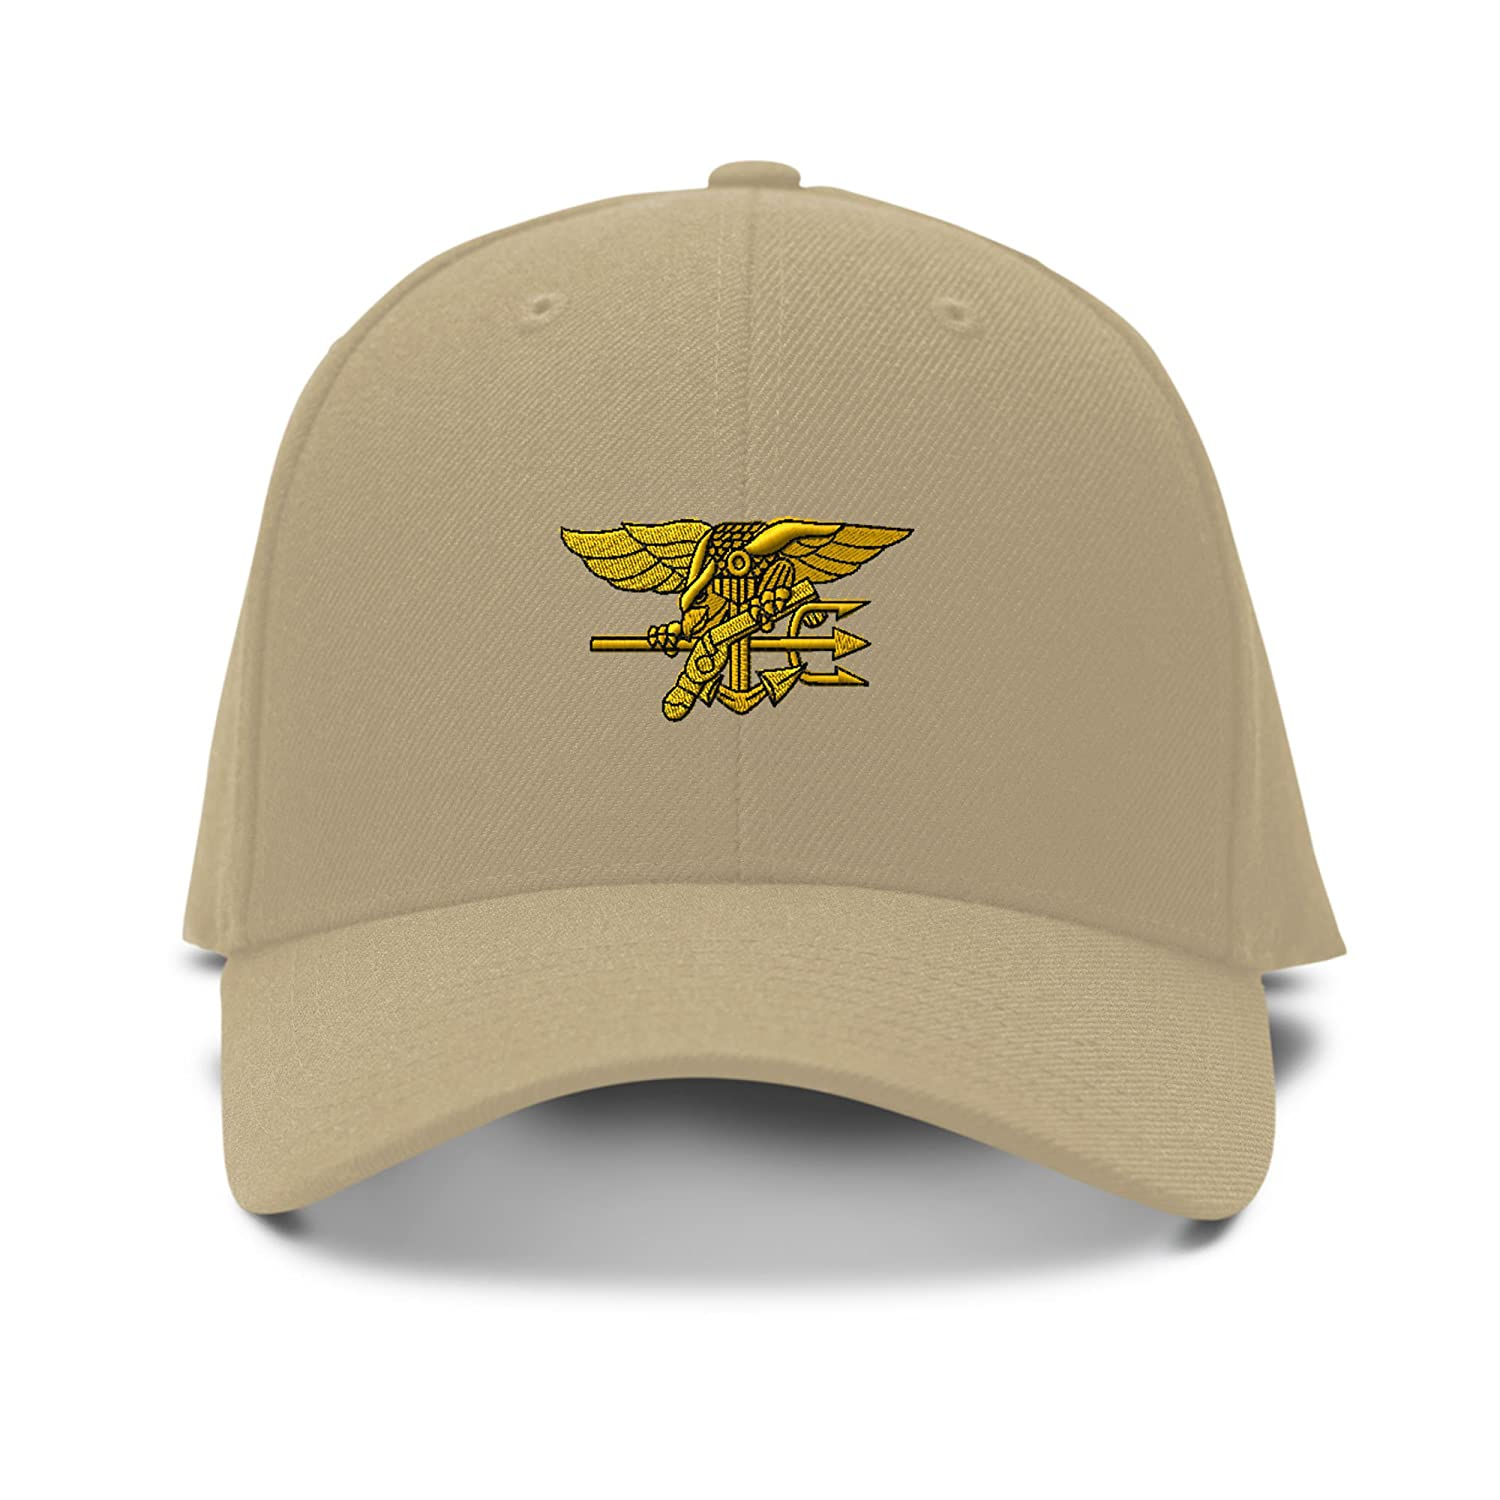 107cce0f8cd U.S. NAVY SEAL MILITARY Embroidery Embroidered Adjustable Hat Baseball Cap  Khaki